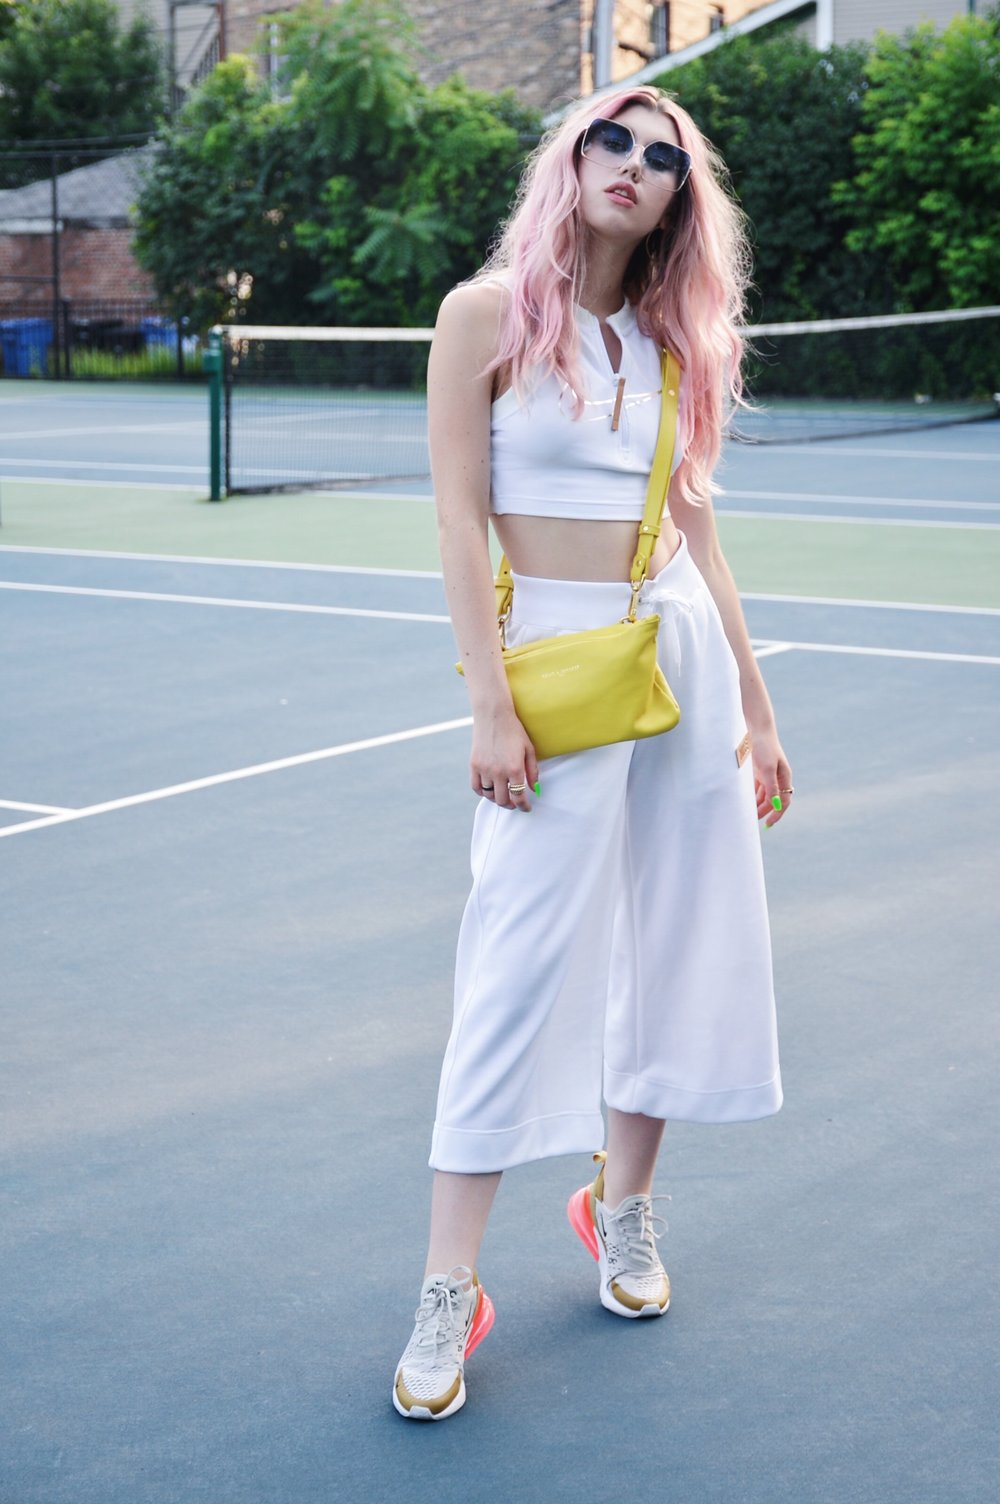 all-white-summer-outfit-tennis-inspired.JPG